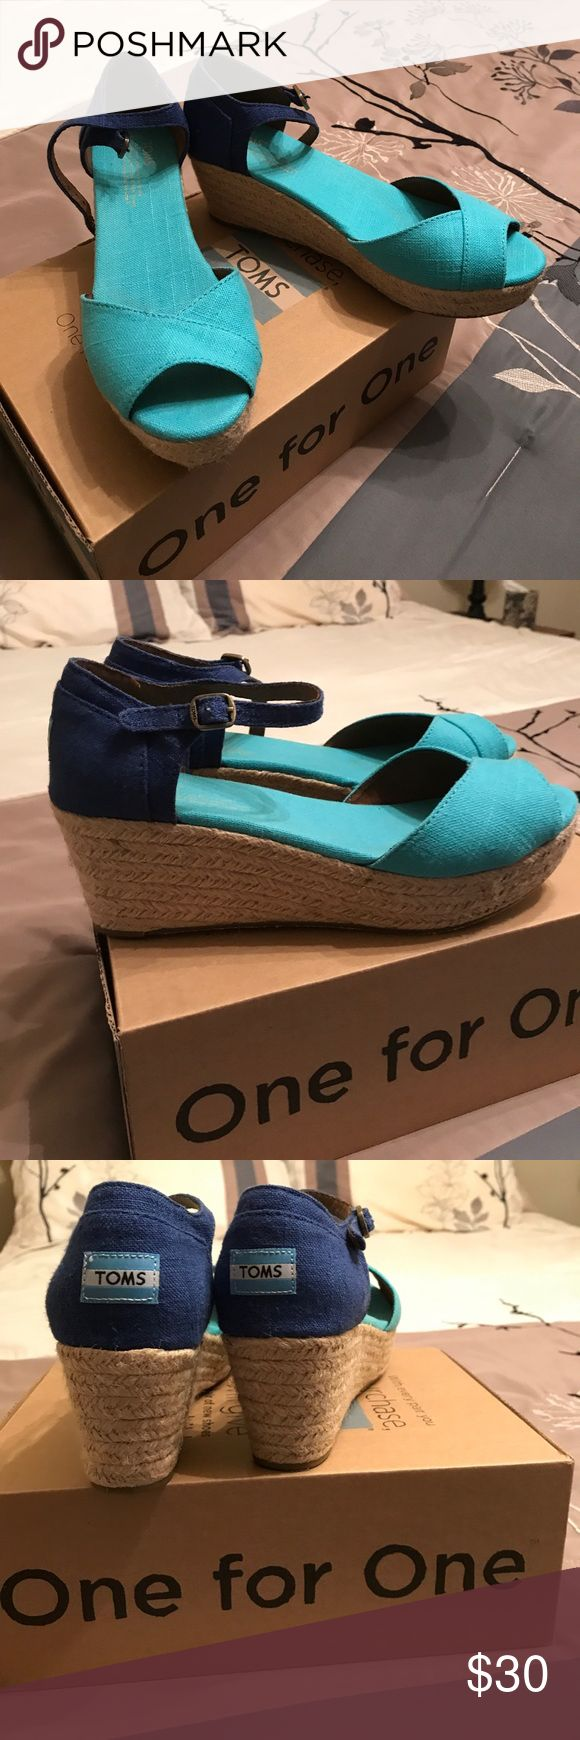 """Toms Wedge shoes Turquoise and Blue, 2-1/2"""" burlap wedges. Fit great, bought new, worn twice. Like new! Toms Shoes Wedges"""